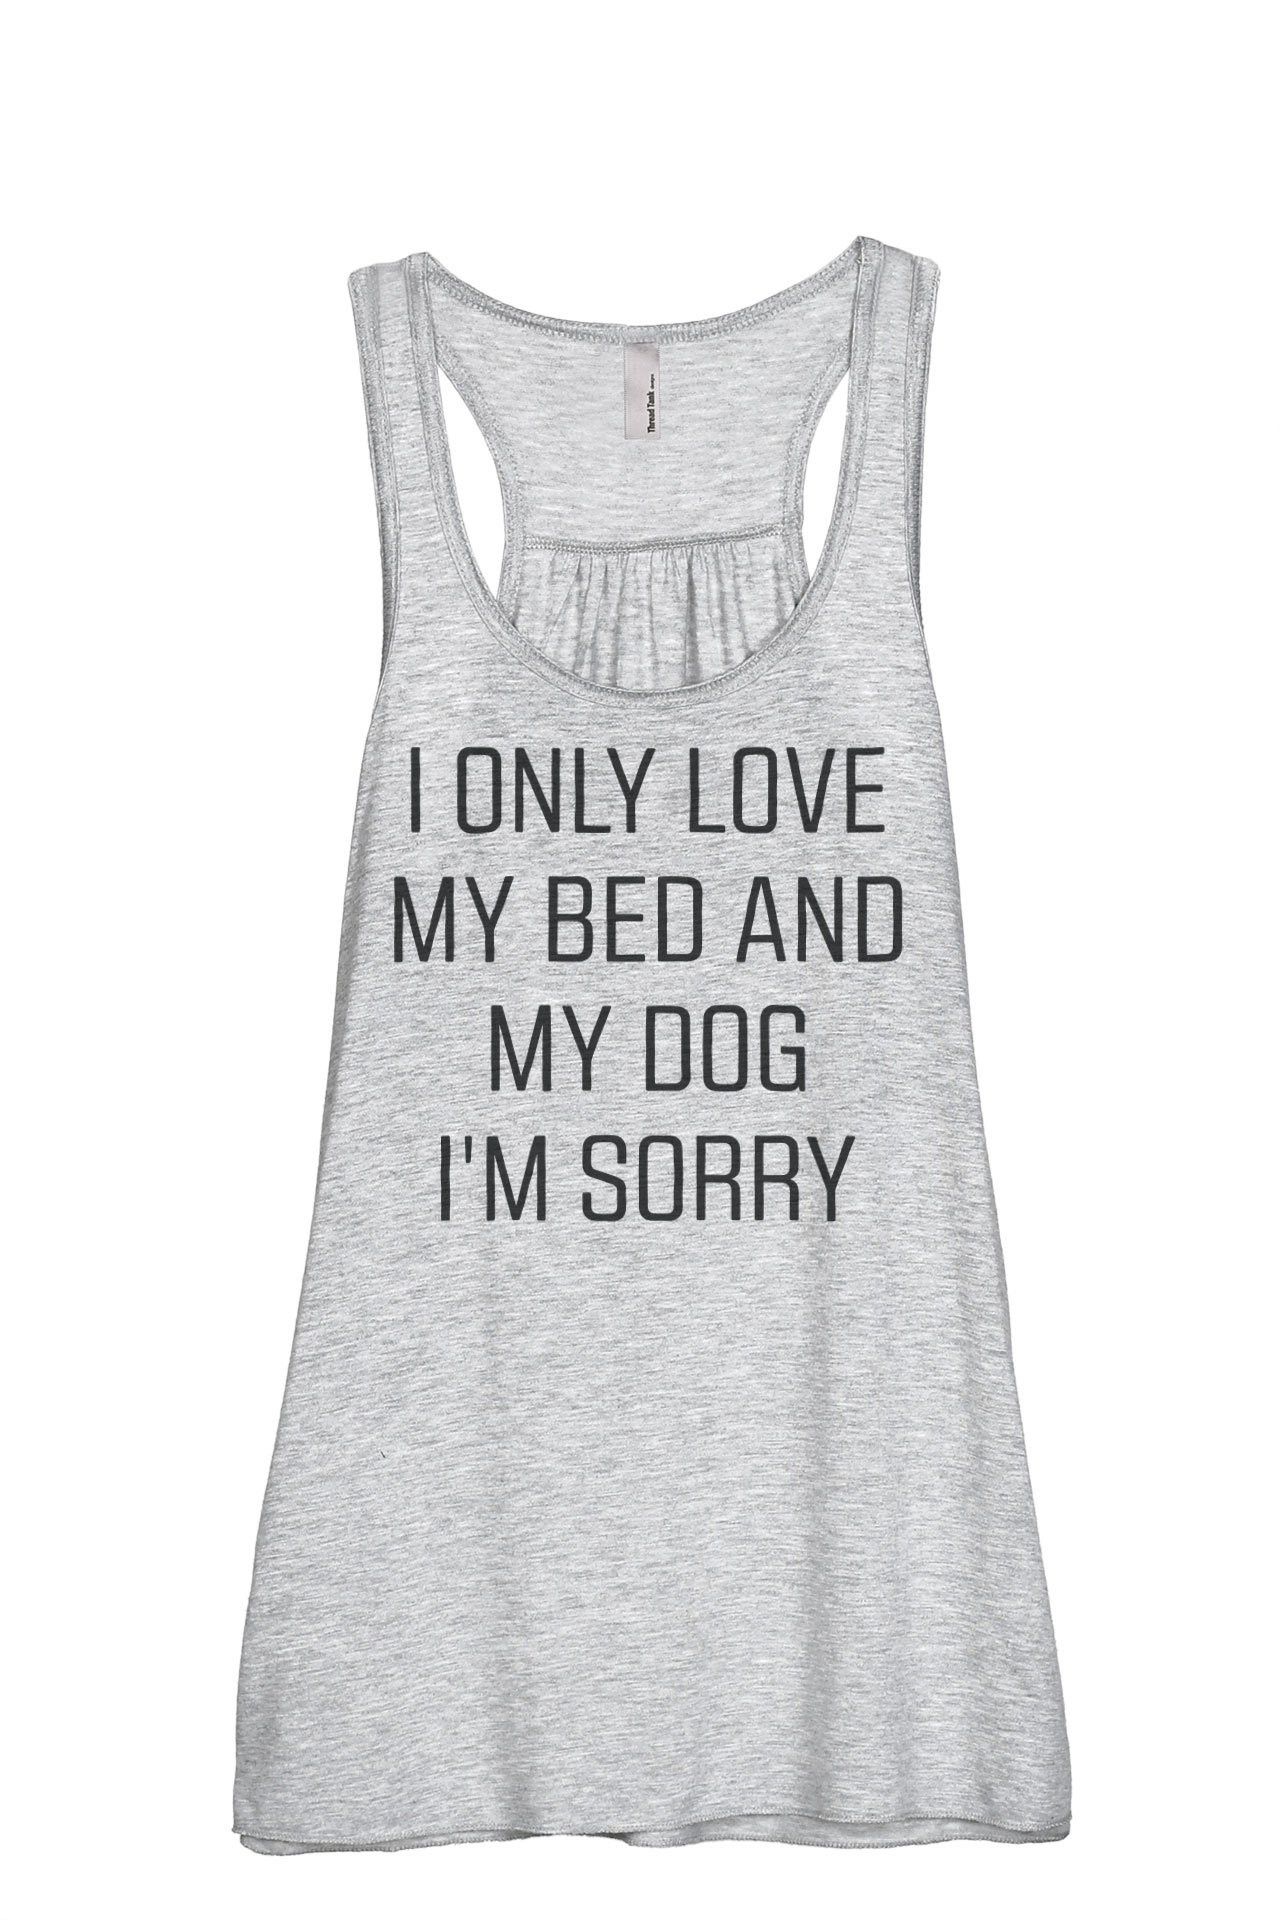 I Only Love My Bed and My Dog I'm Sorry Women's Fashion Sleeveless Flowy Racerback Tank Top Sport Grey Small